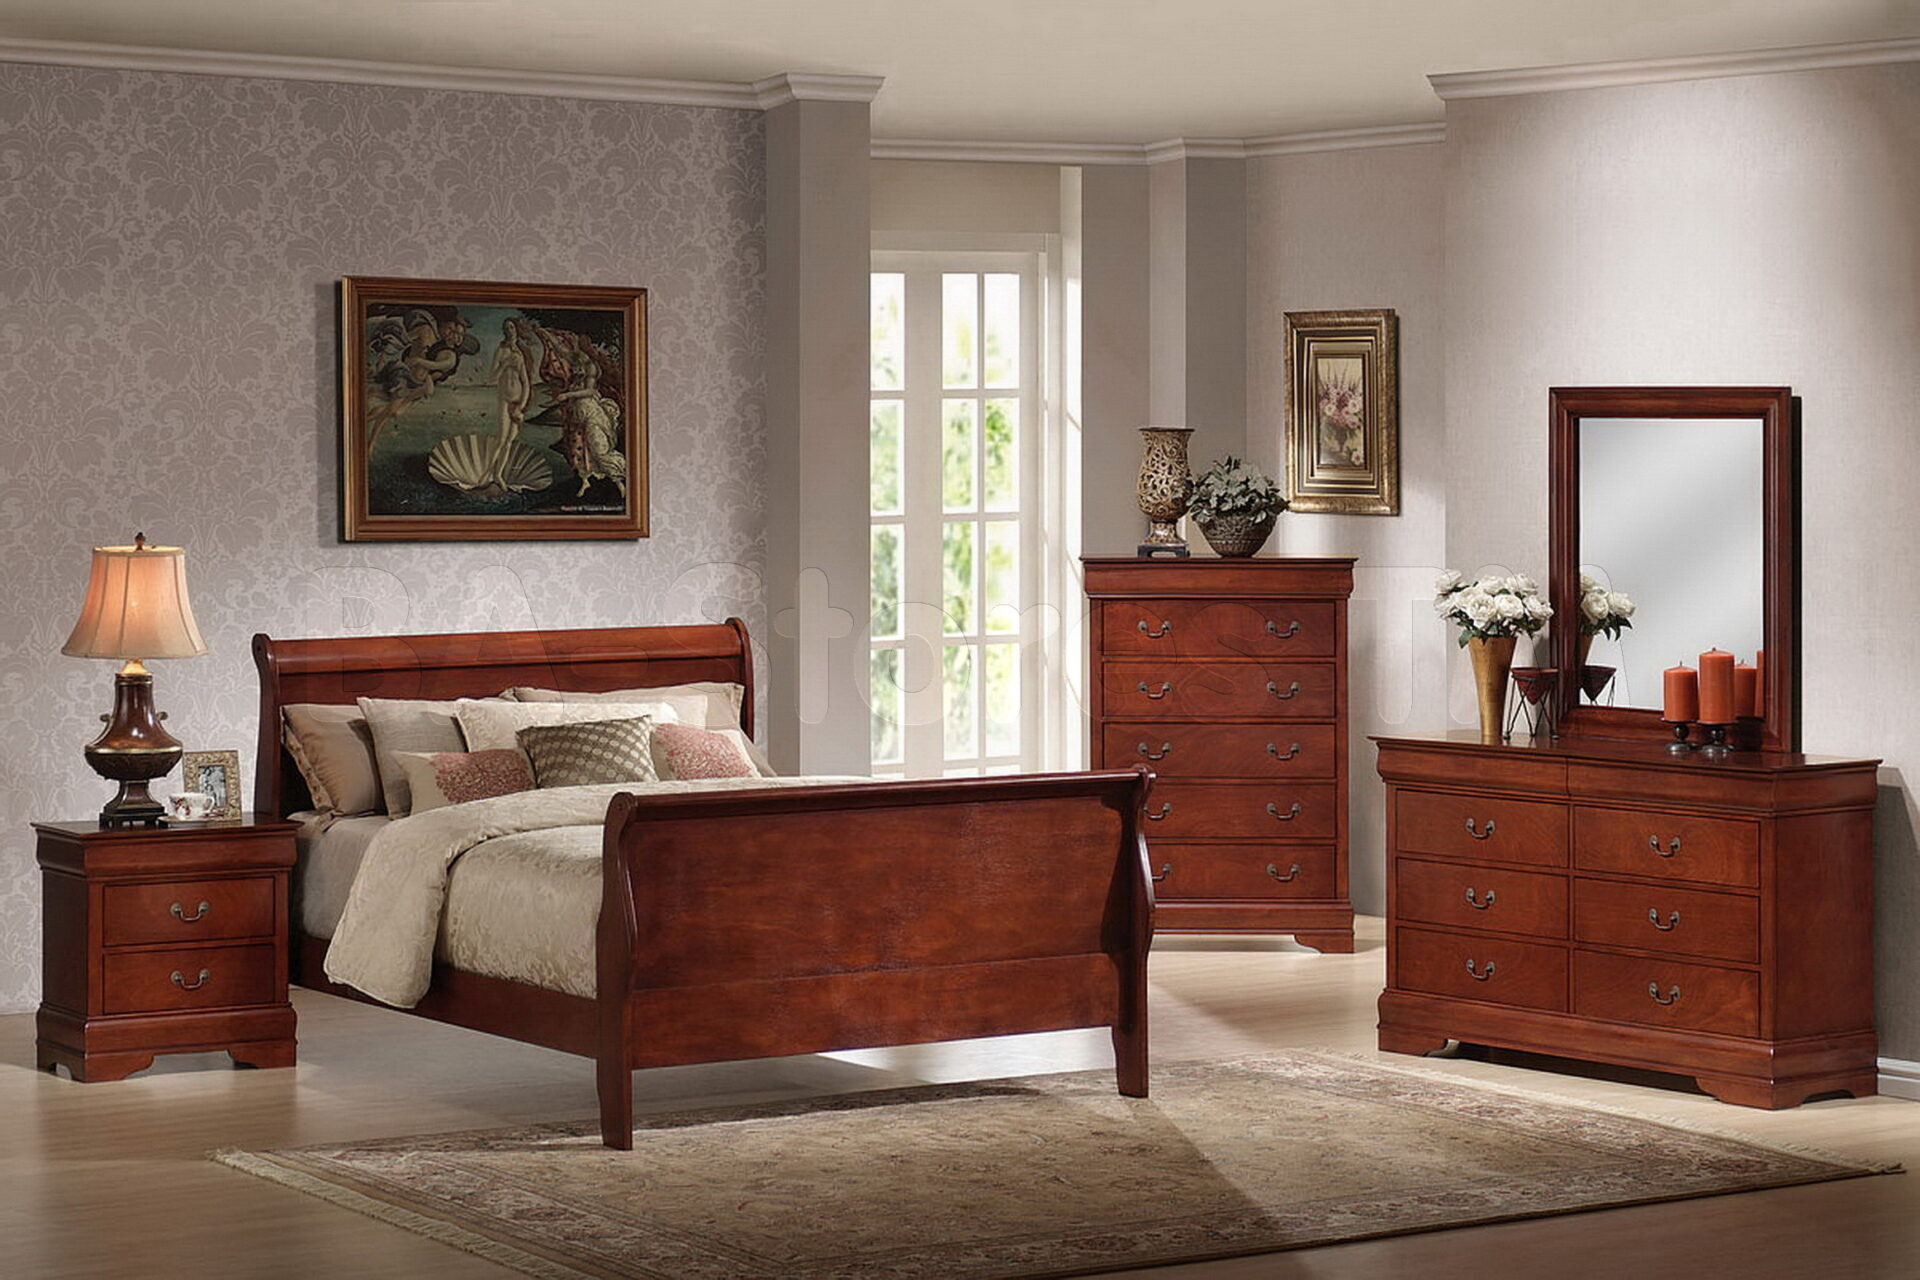 - Wooden Furniture Tips, Pricing, Shopping